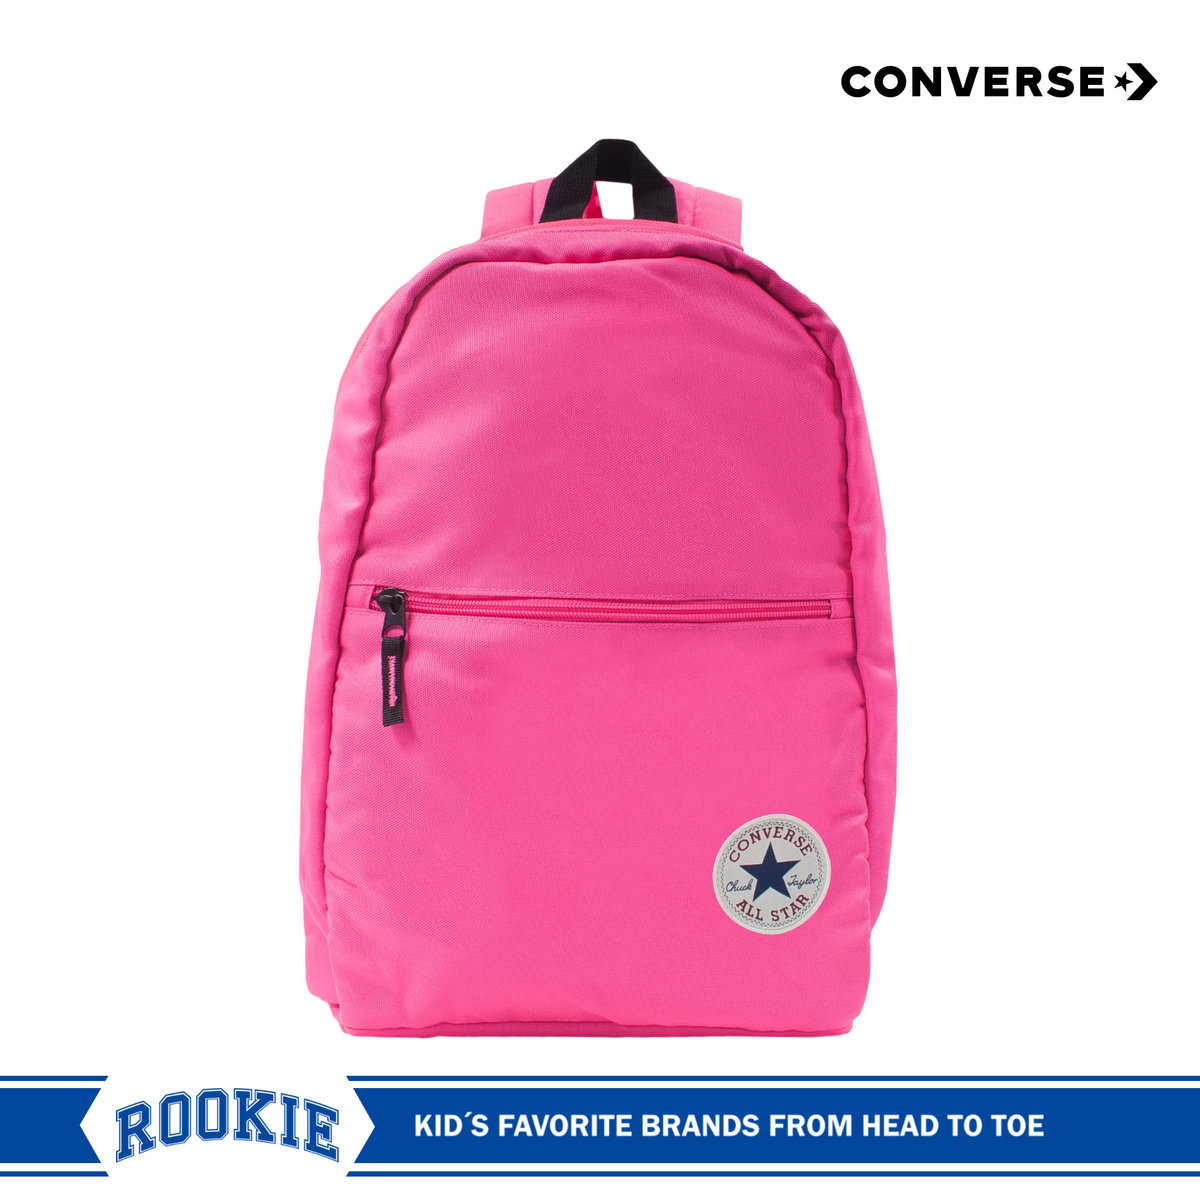 CONVERSE Girls' Double-sided Backpack